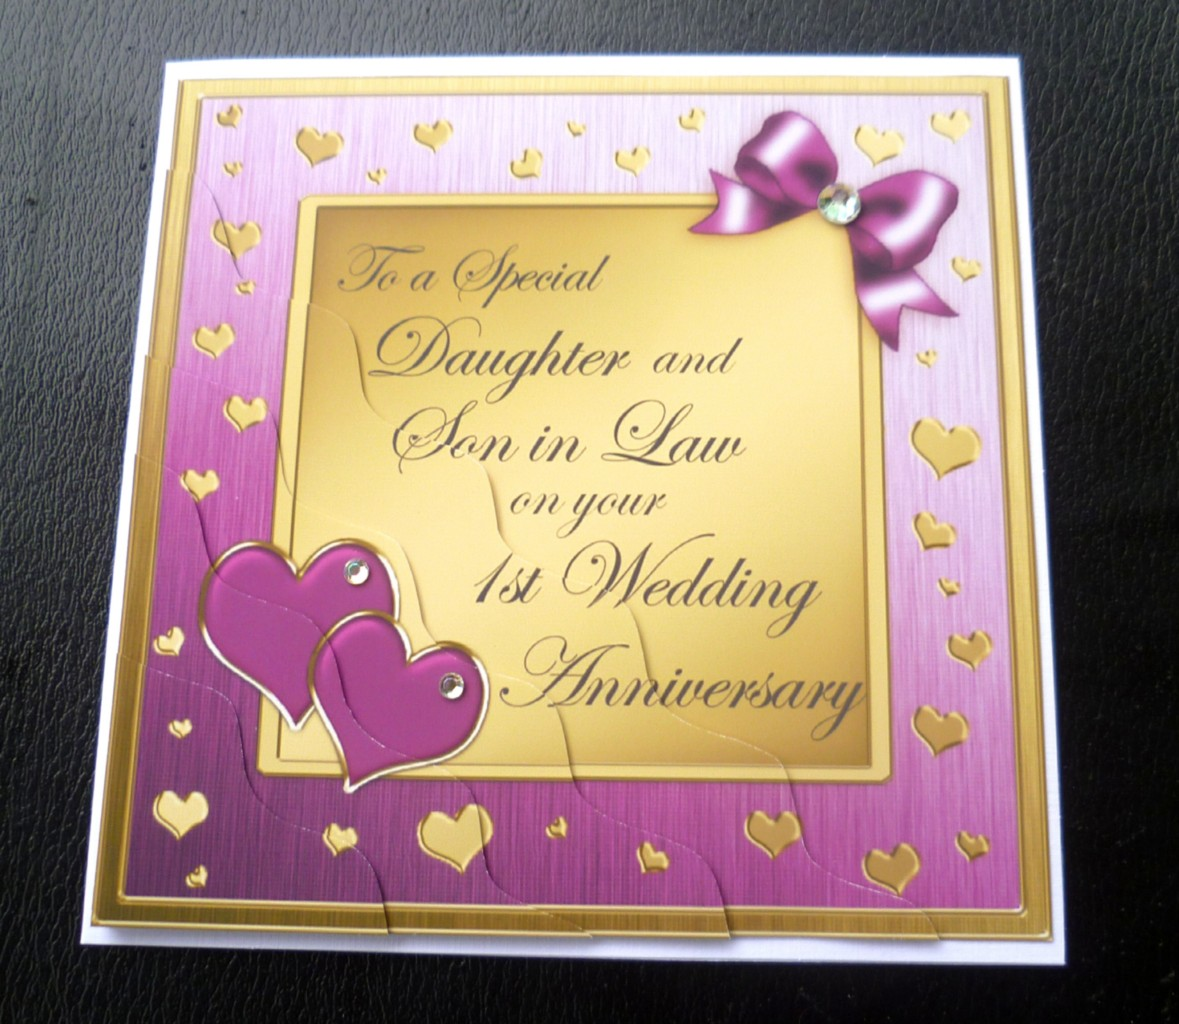 3rd Wedding Anniversary Gift Ideas For Son And Daughter In Law : Details about Daughter & Son In Law 1st First Wedding Anniversary Card ...